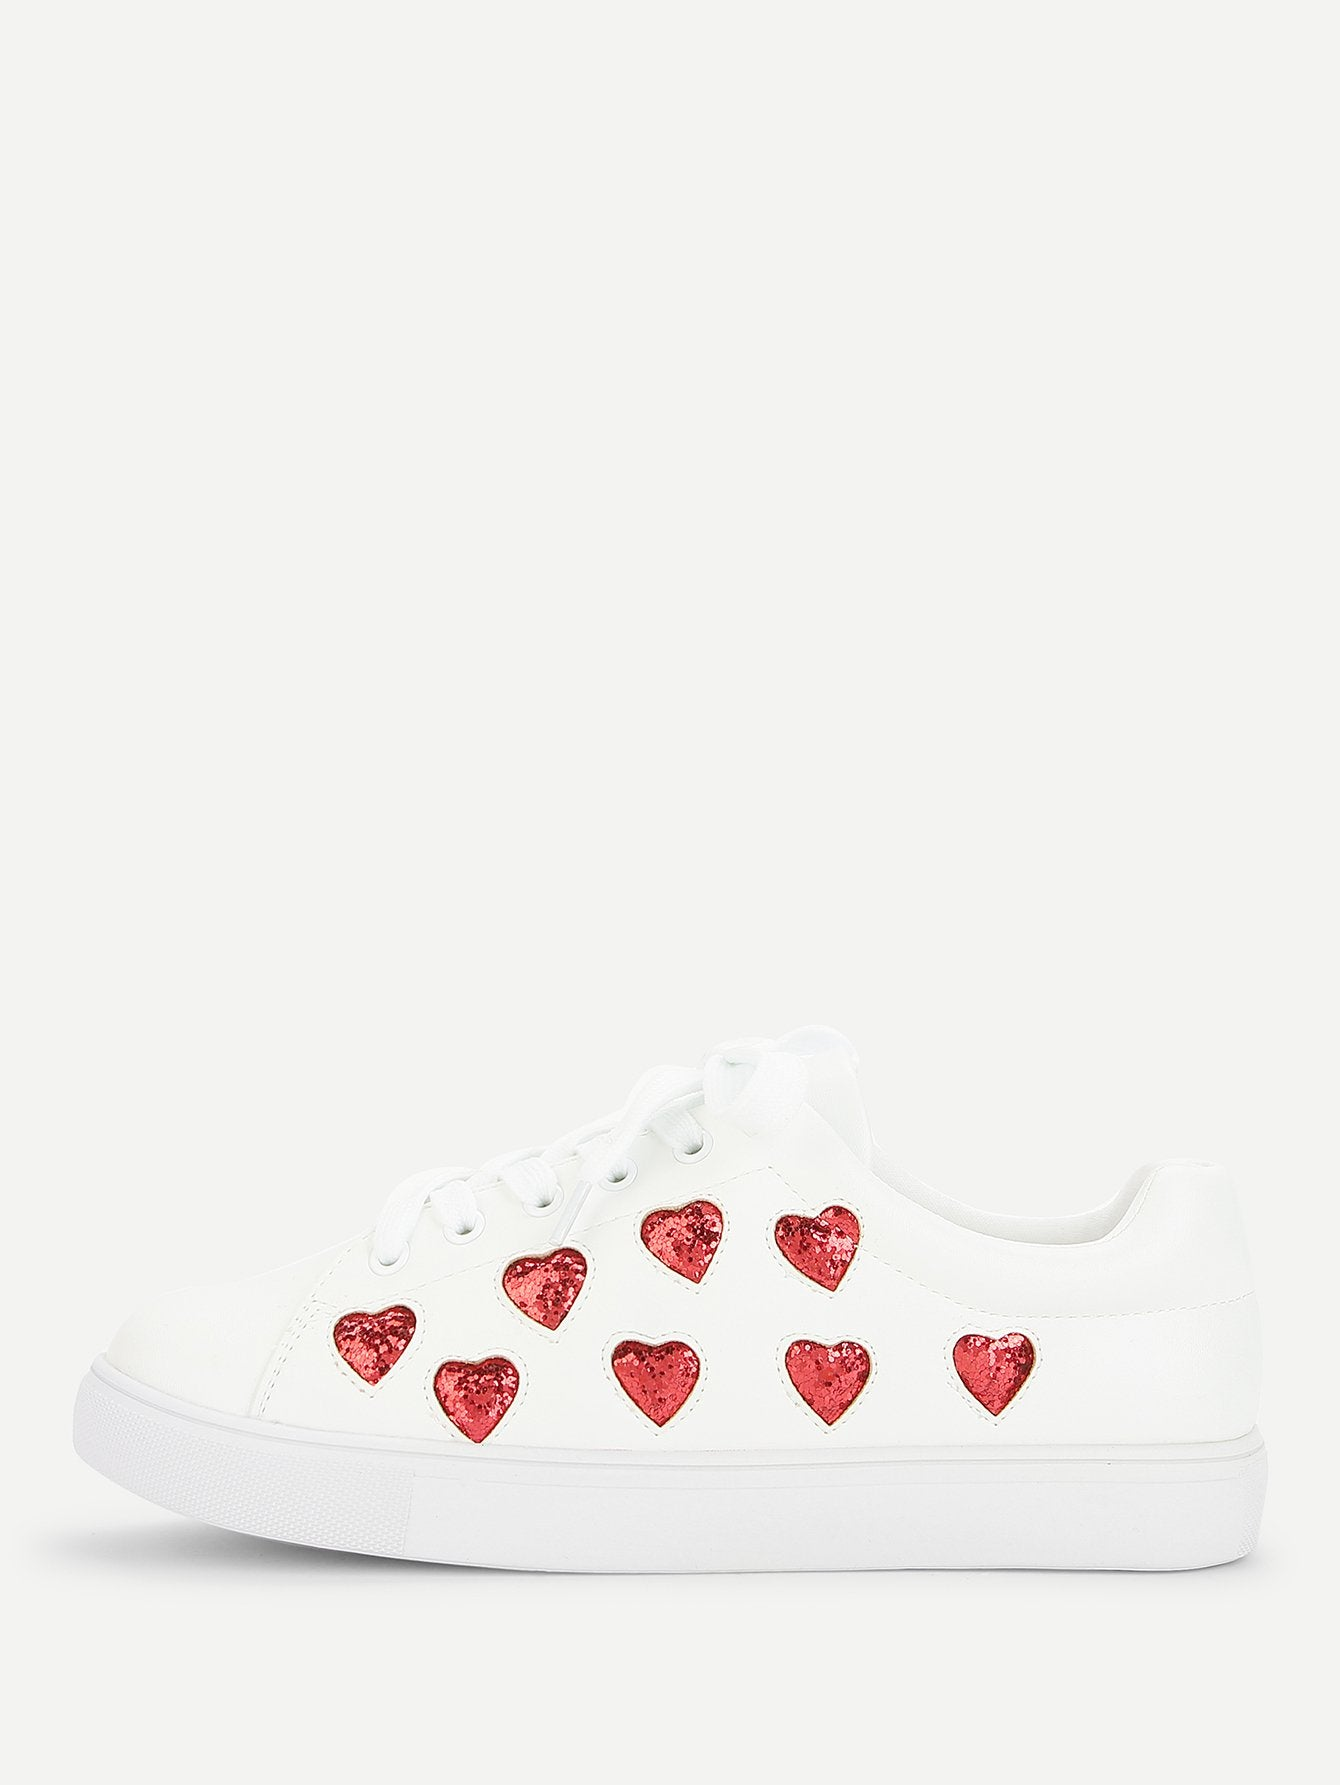 Heart Pattern Lace Up Sneakers - Alluforu